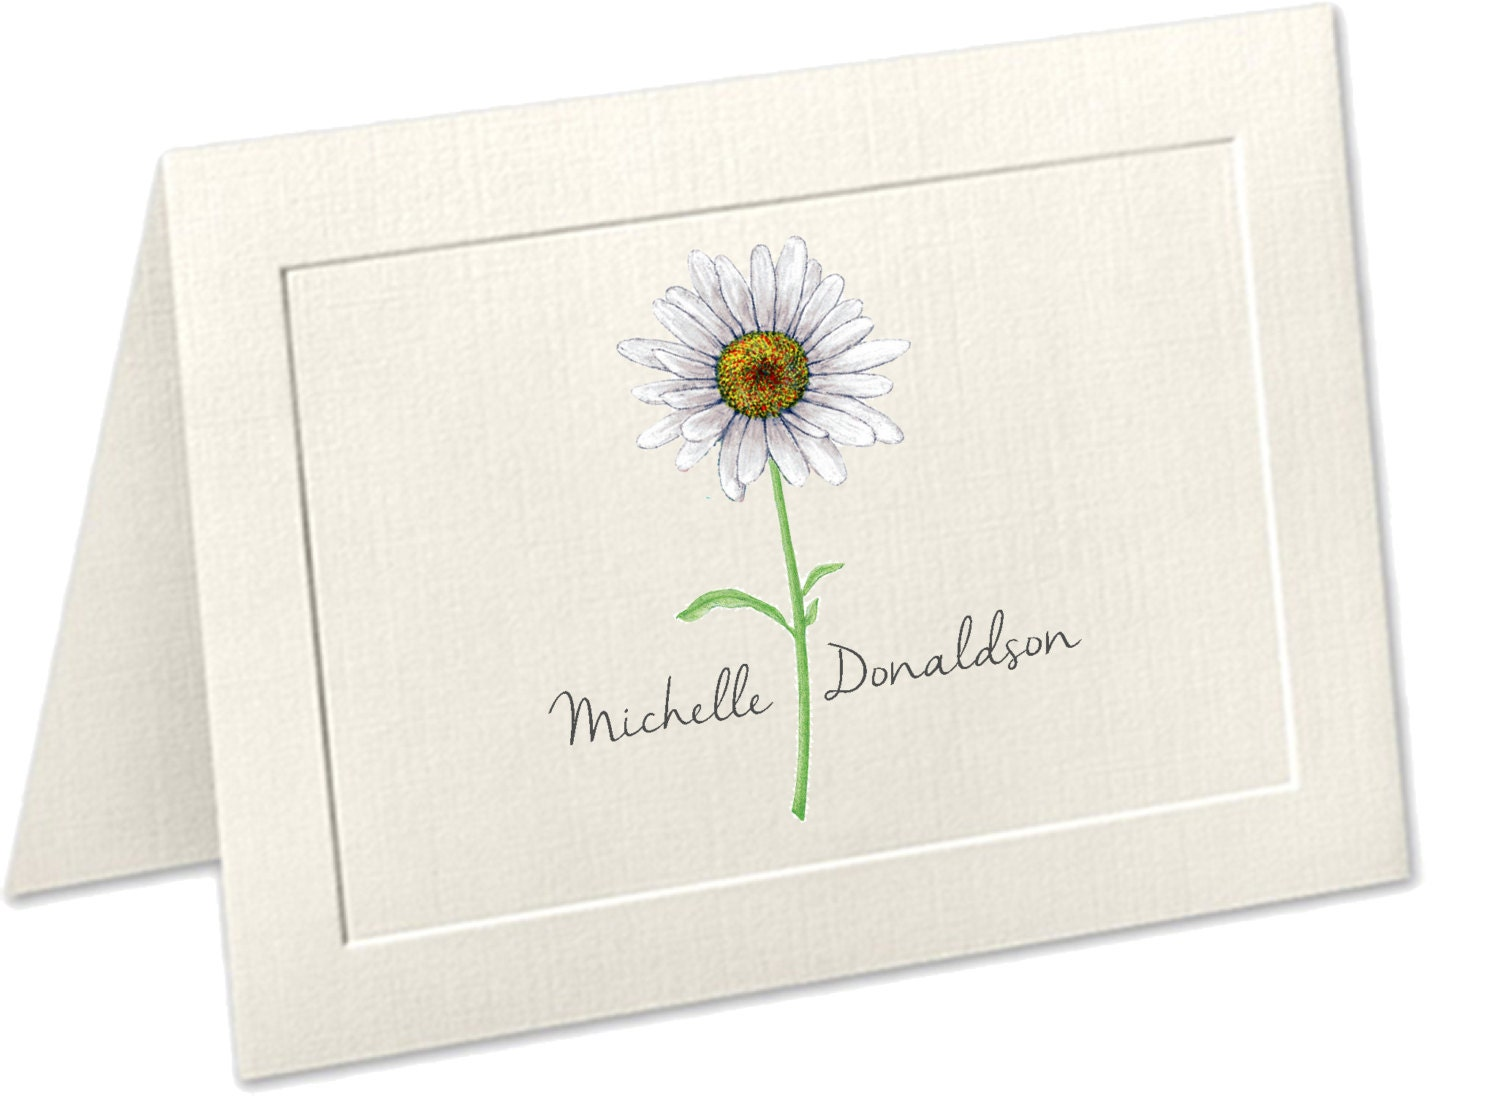 Gratifying image for embossed stationery